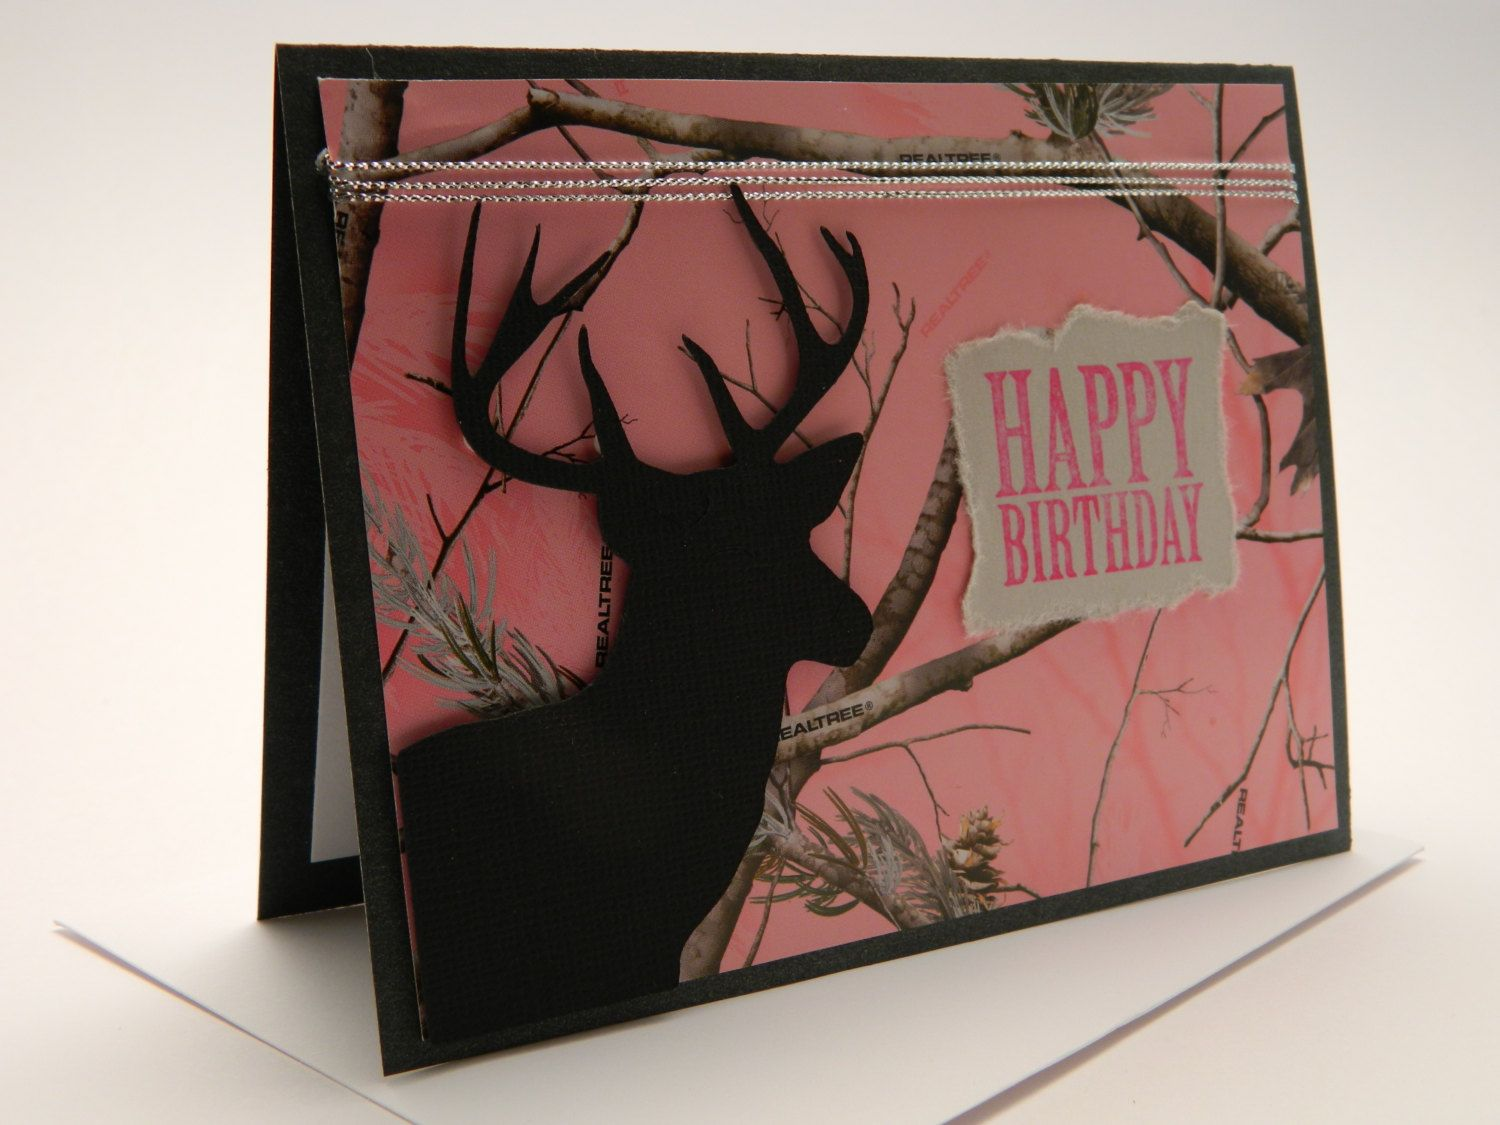 Handmade greeting card birthday buck realtree by designsbycnc woman birthday cards happy birthday her camouflage cards pink camo card card for wife girlfriend birthday deer hunter bookmarktalkfo Image collections